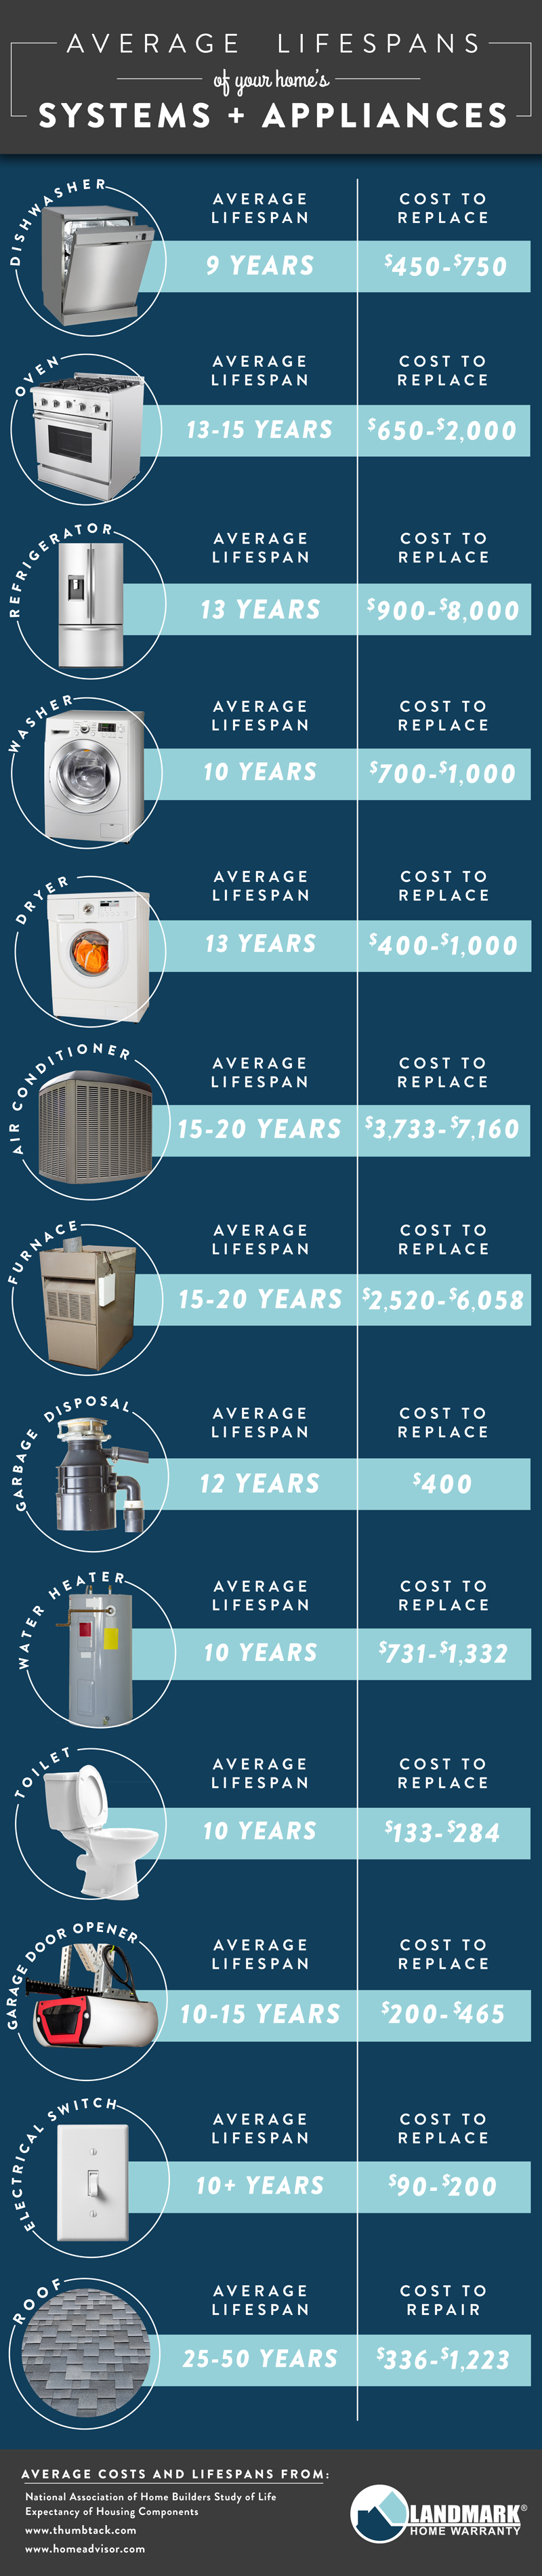 The average lifespan of your home's systems and appliances and how much it costs to replace them.